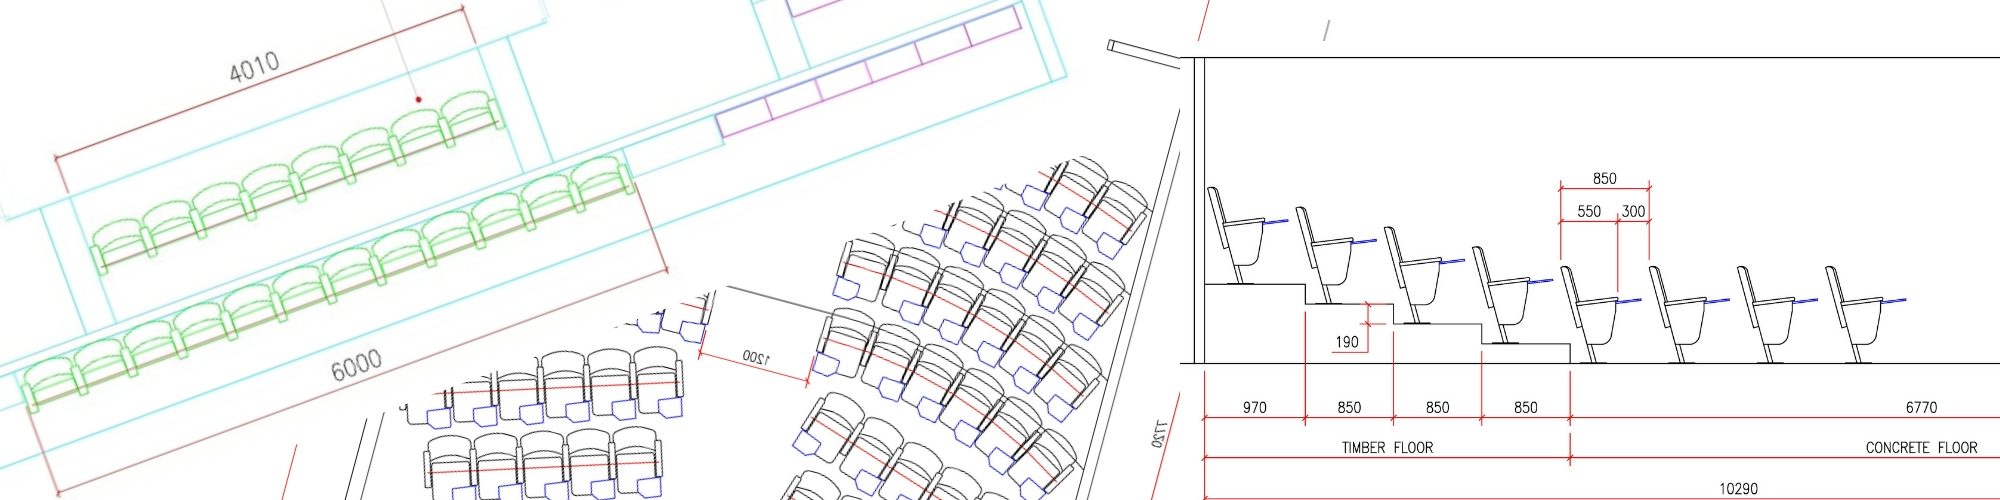 Selection of seating layout drawings for auditoria